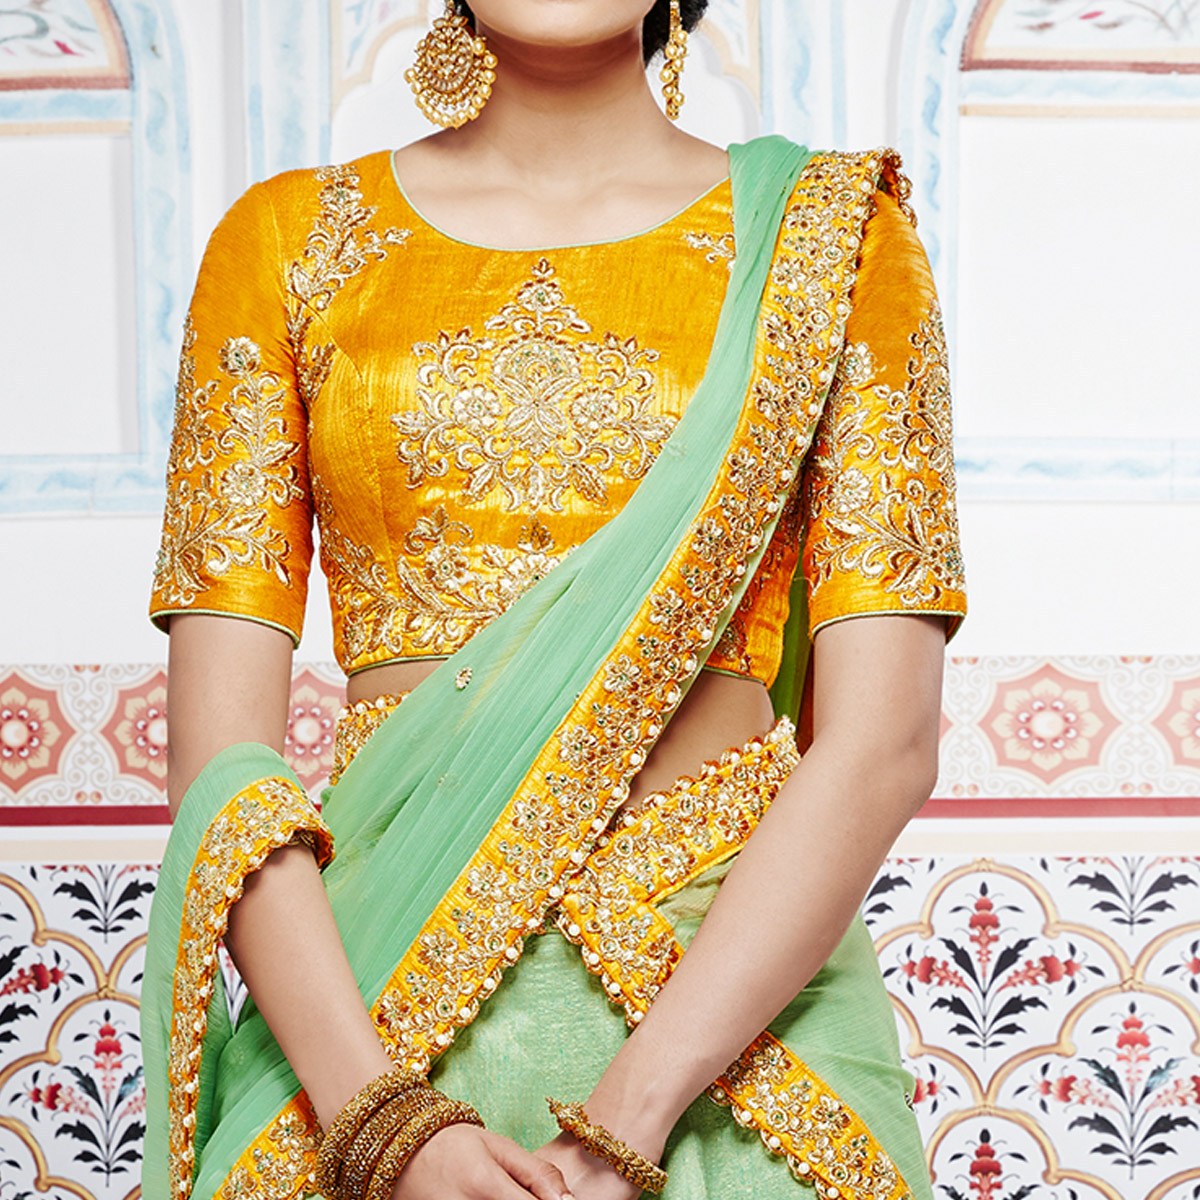 NAKKASHI - Pretty Pista Green Colored Party Wear Embroidered Handloom Raw Silk Lehenga Choli